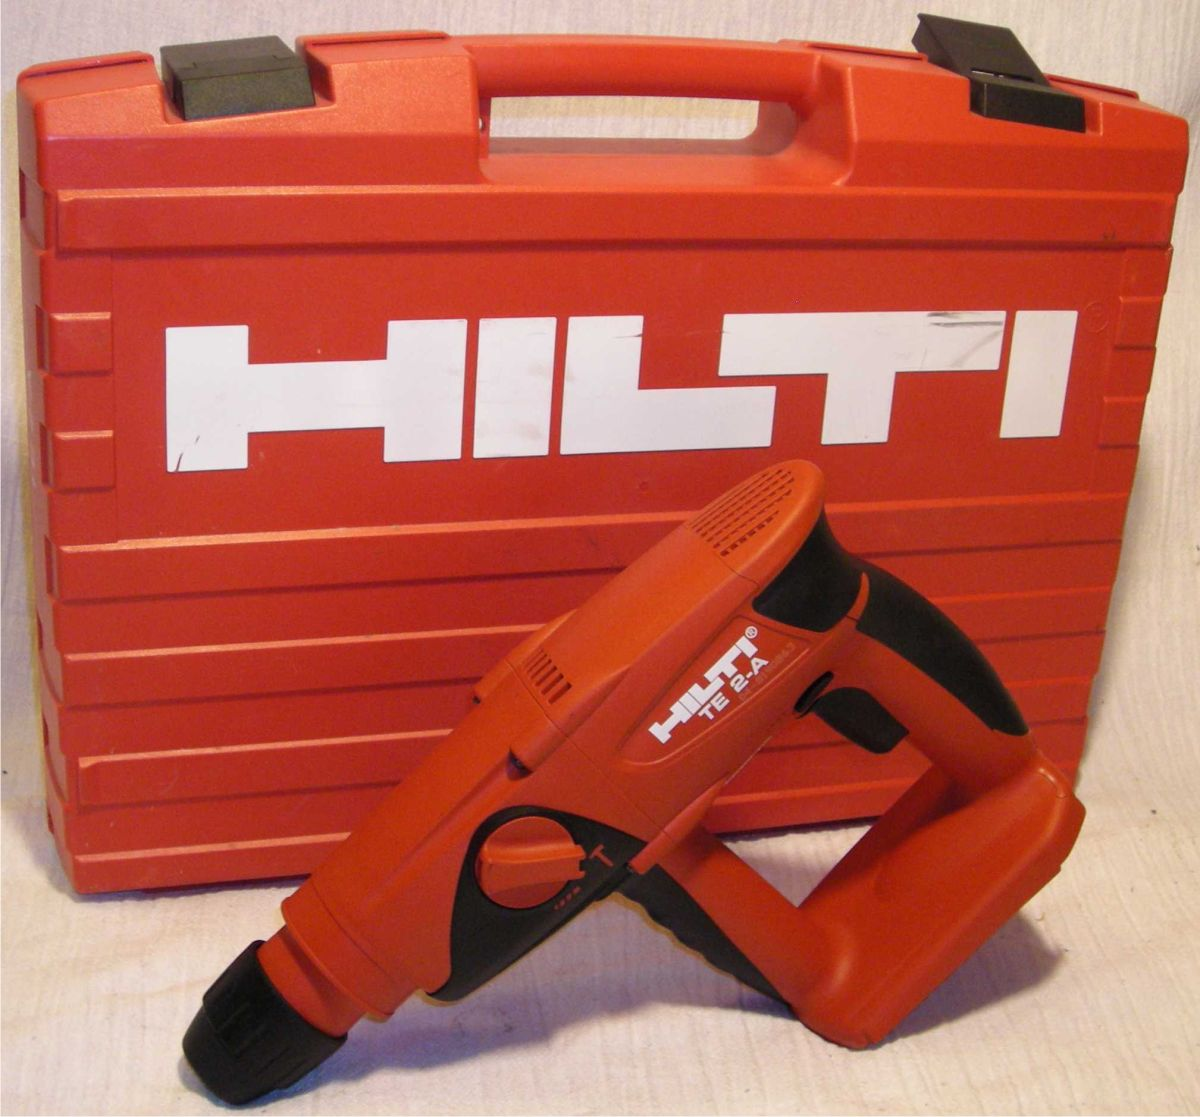 Hilti screw Kit and a Drilling Machine